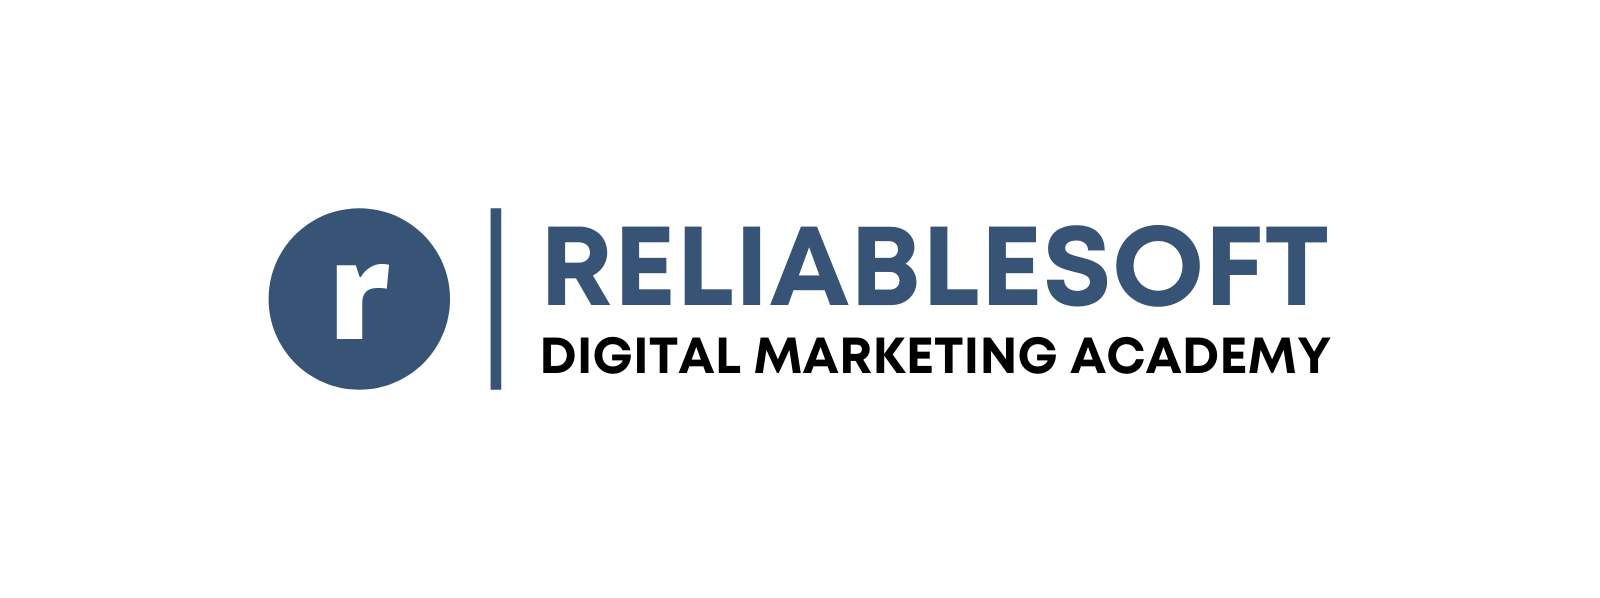 Academia de marketing digital de Reliablesoft